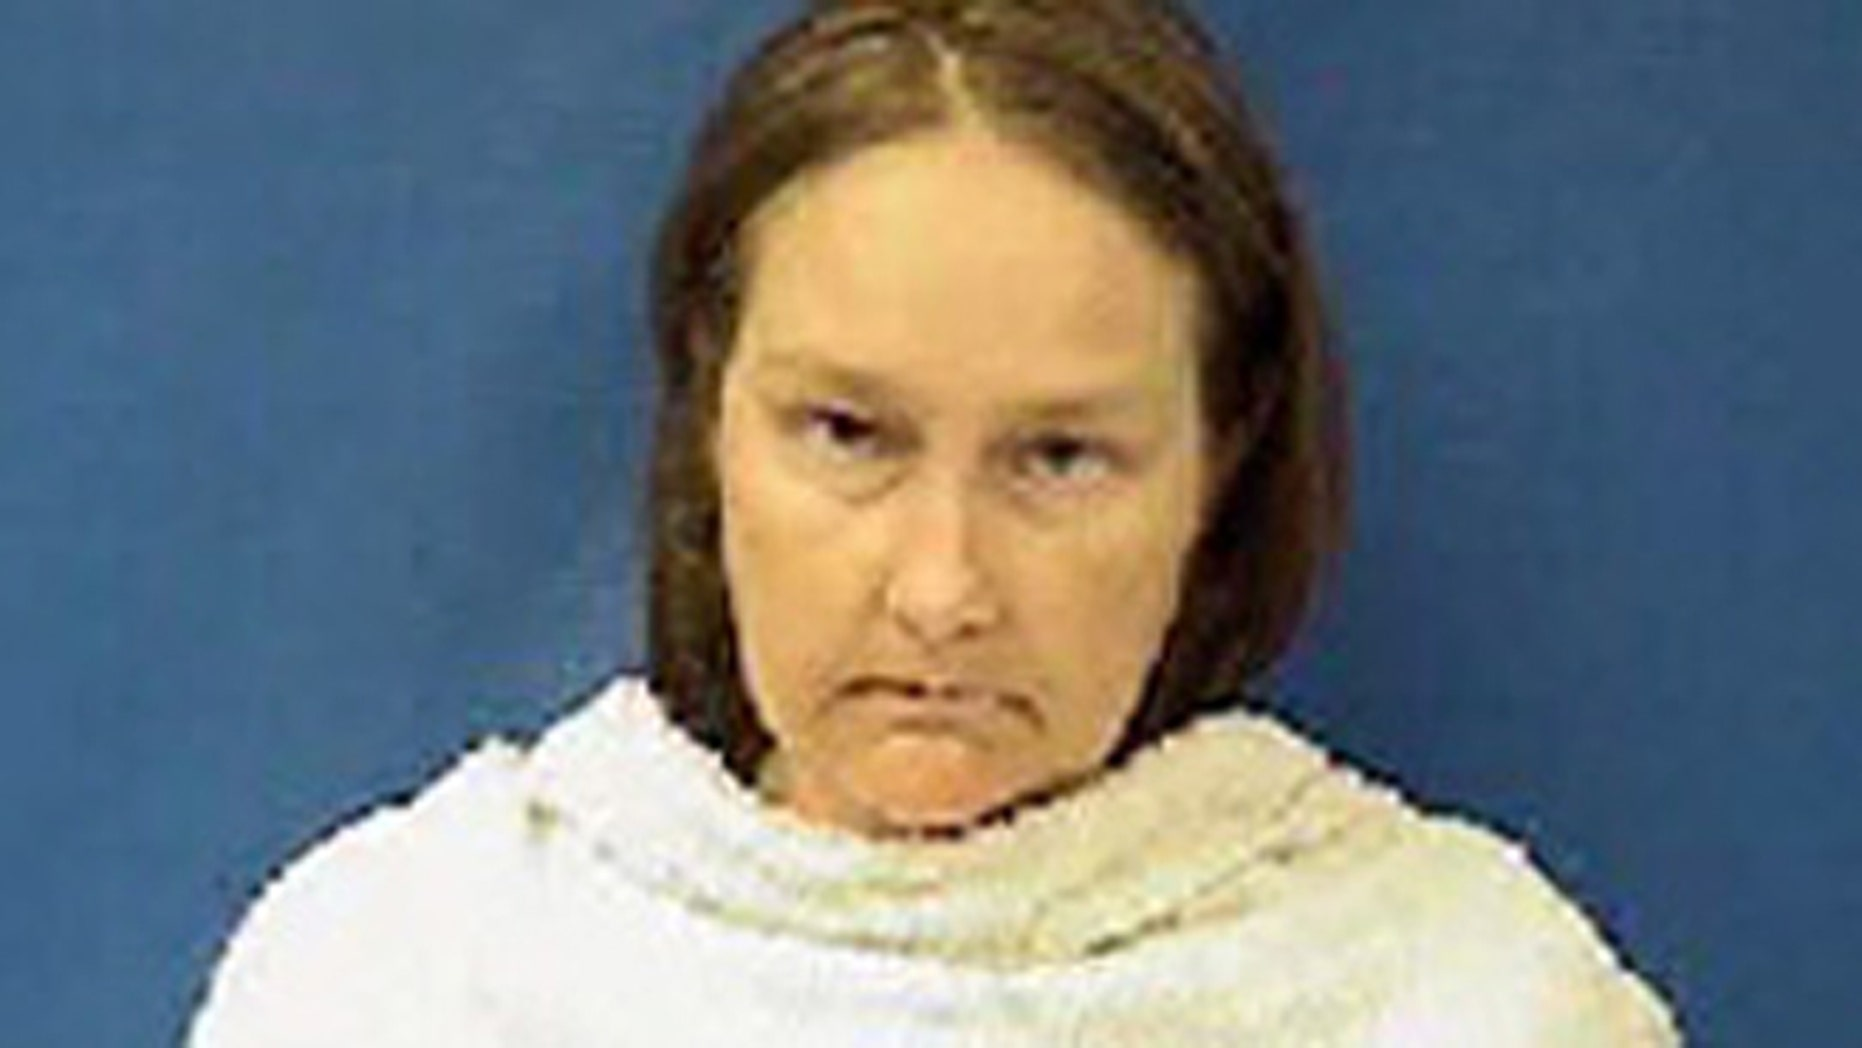 Kim Williams, wife of former Kaufman County justice of the peace Eric Williams, is seen in an undated photo provided by the Kaufman County Sheriff.